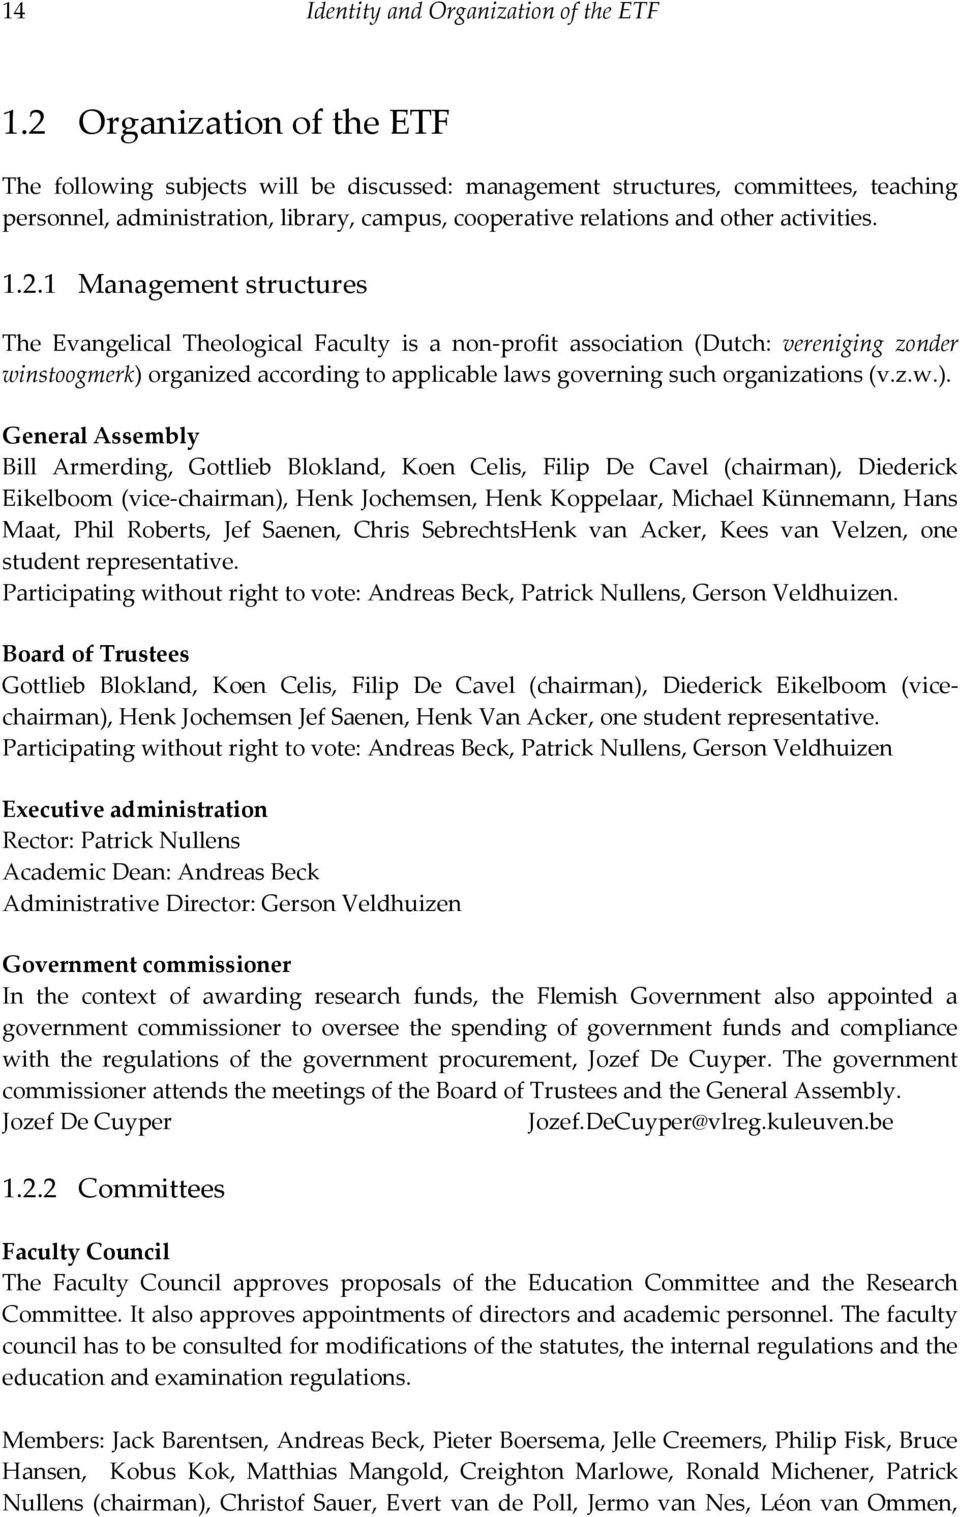 1.2.1 Management structures The Evangelical Theological Faculty is a non-profit association (Dutch: vereniging zonder winstoogmerk) organized according to applicable laws governing such organizations